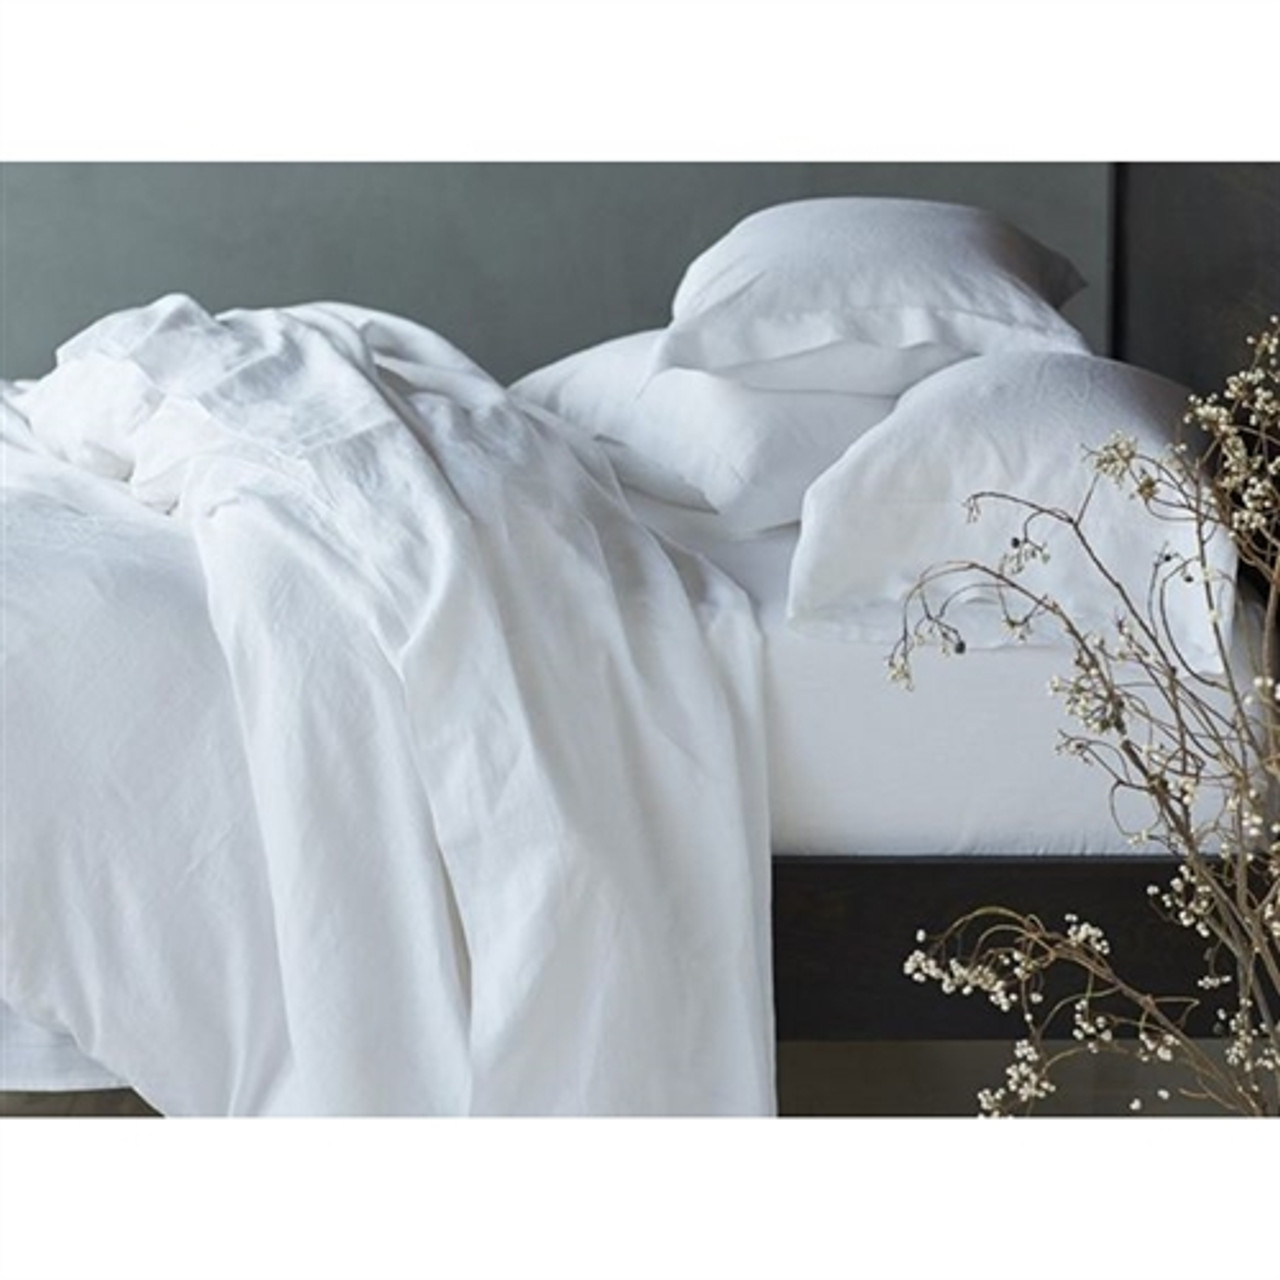 Relaxed  Linen Sheet Set - Assorted Colors and Sizes